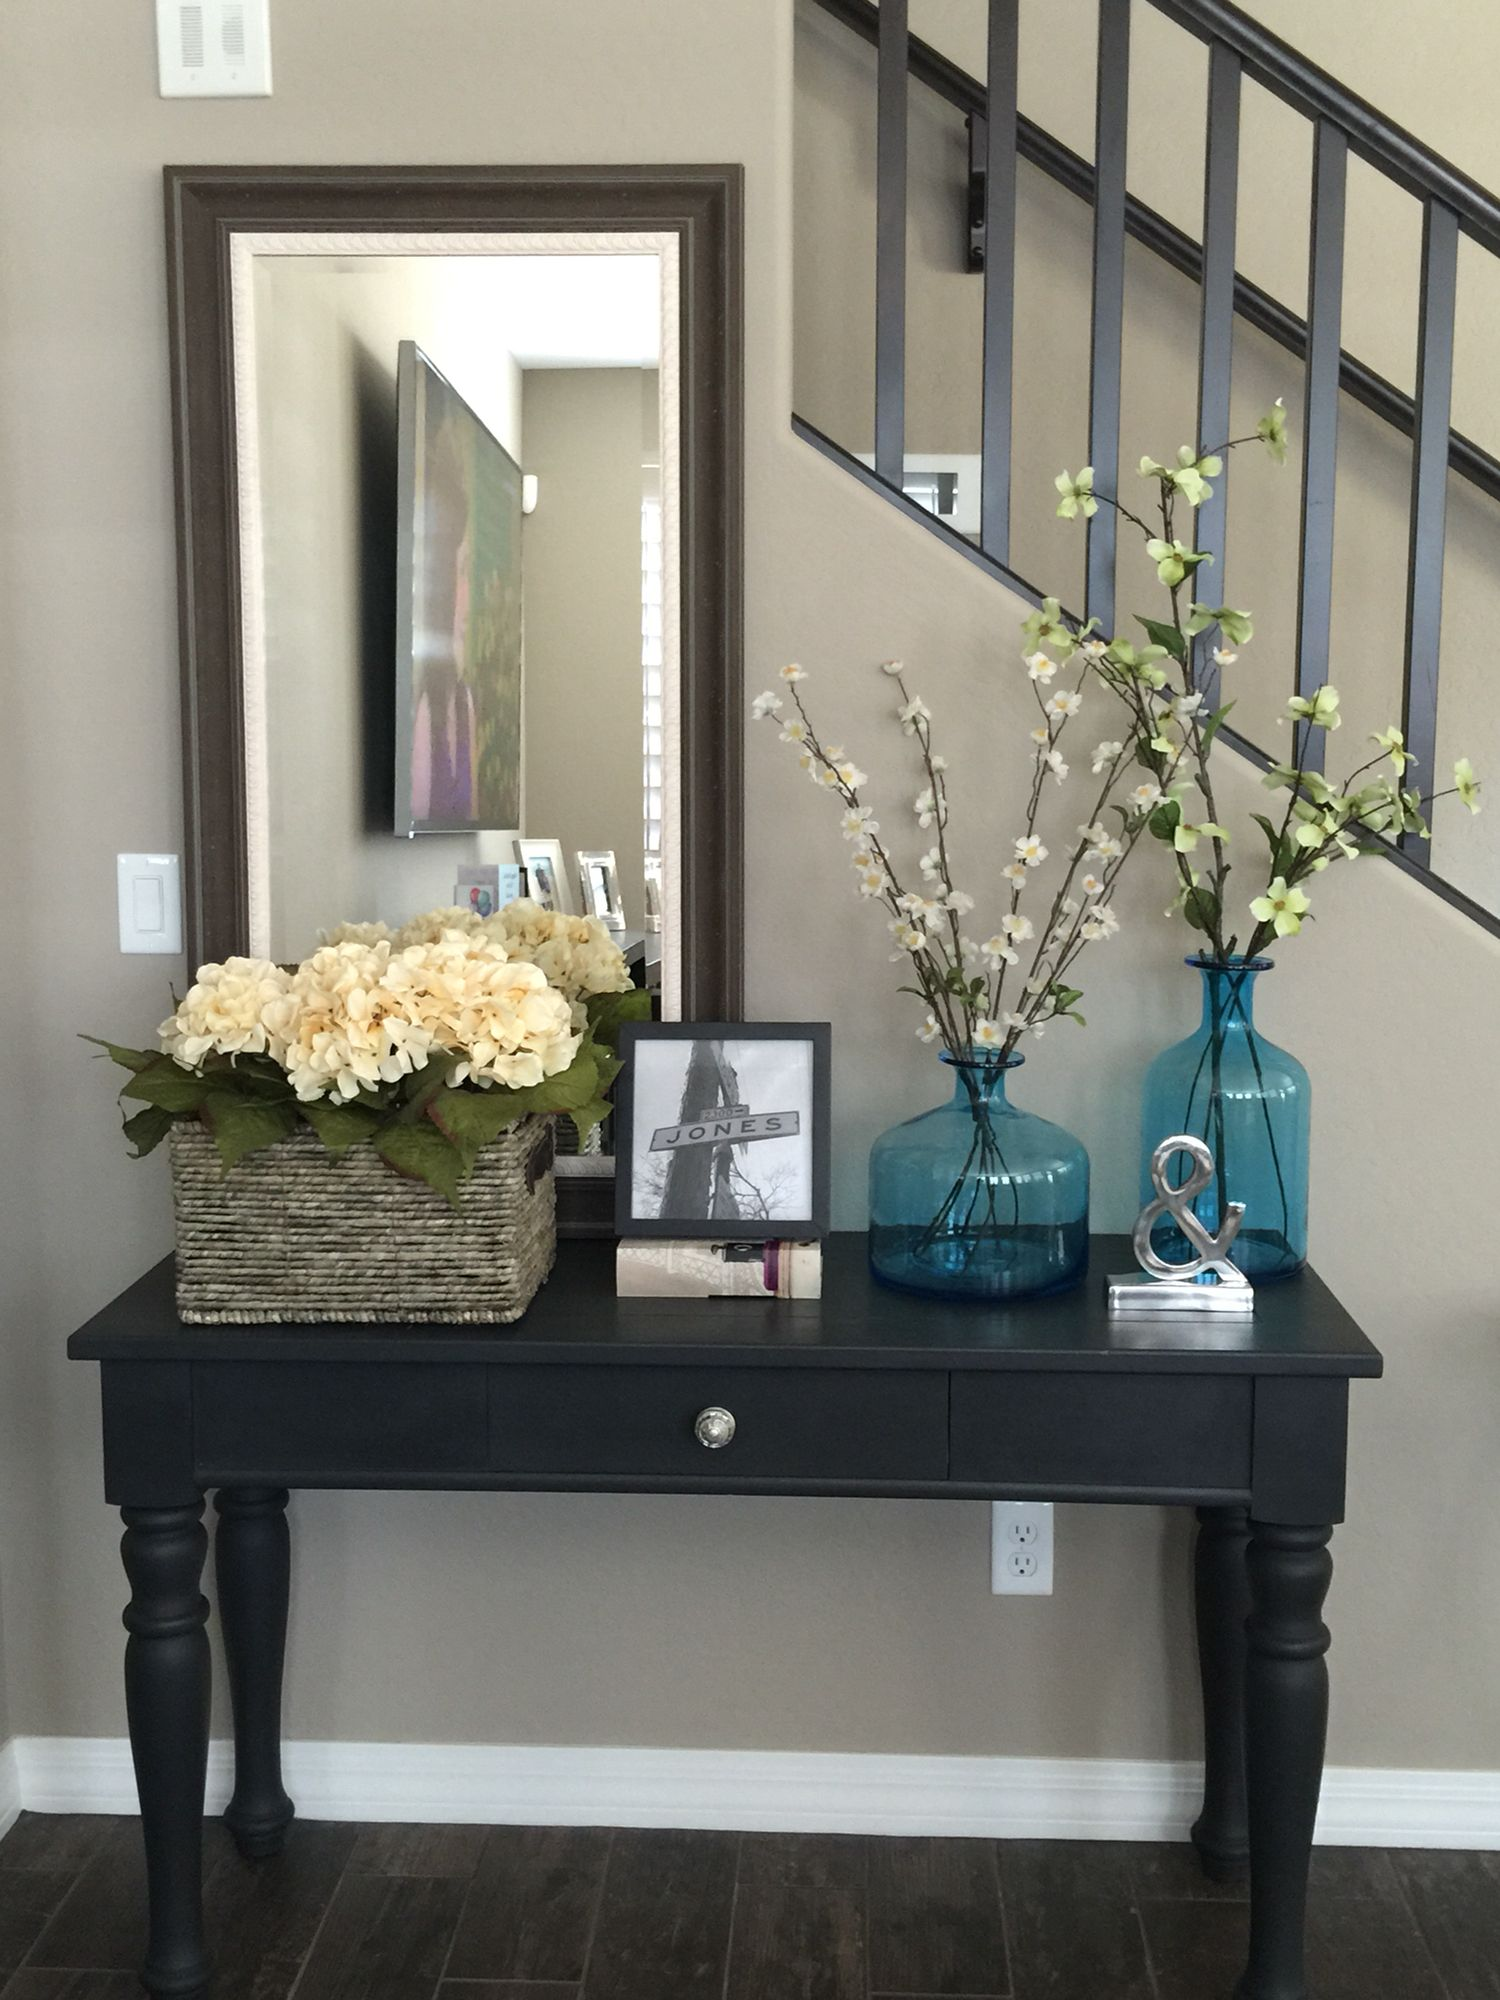 Entry Way Sofa Table Broyhill Table Repurposed With Annie Sloan Chalk Paint In Black And Clear Wax Home Decor Mirrors Home Decor Diy Home Decor